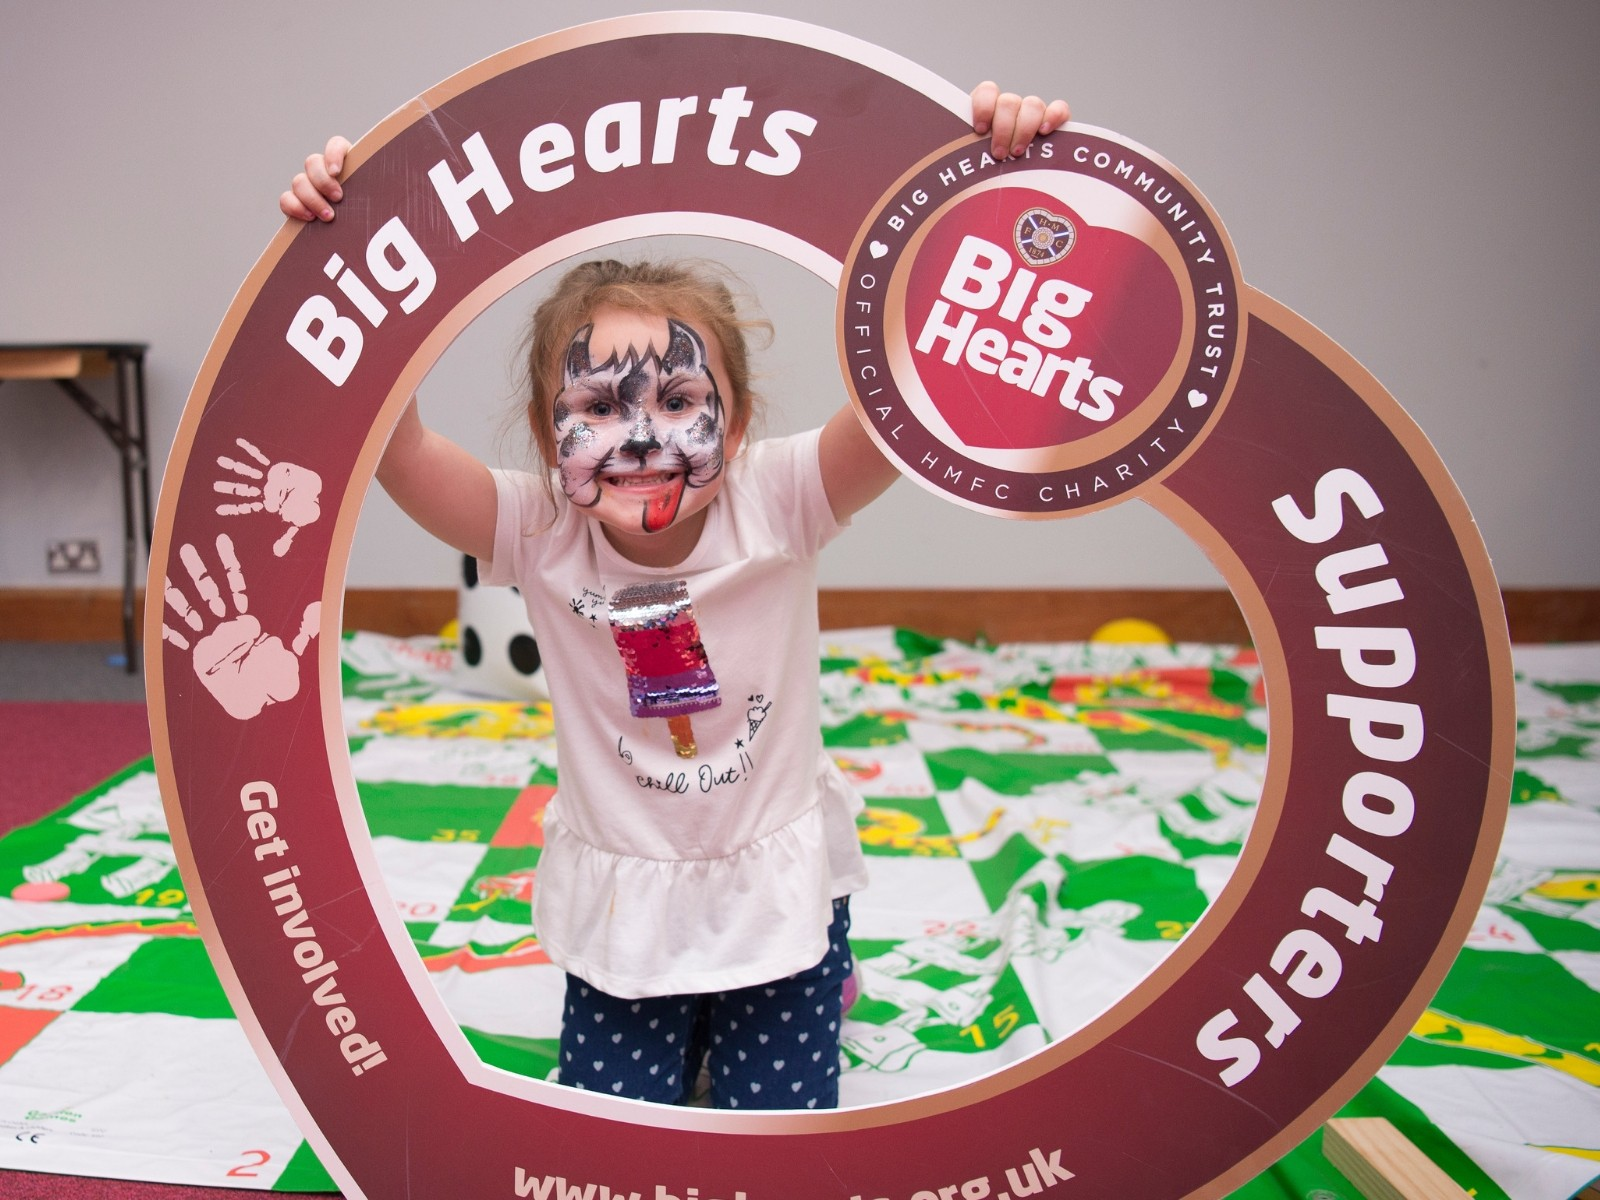 » Big Hearts celebrate 3 years of support to Kinship Care families